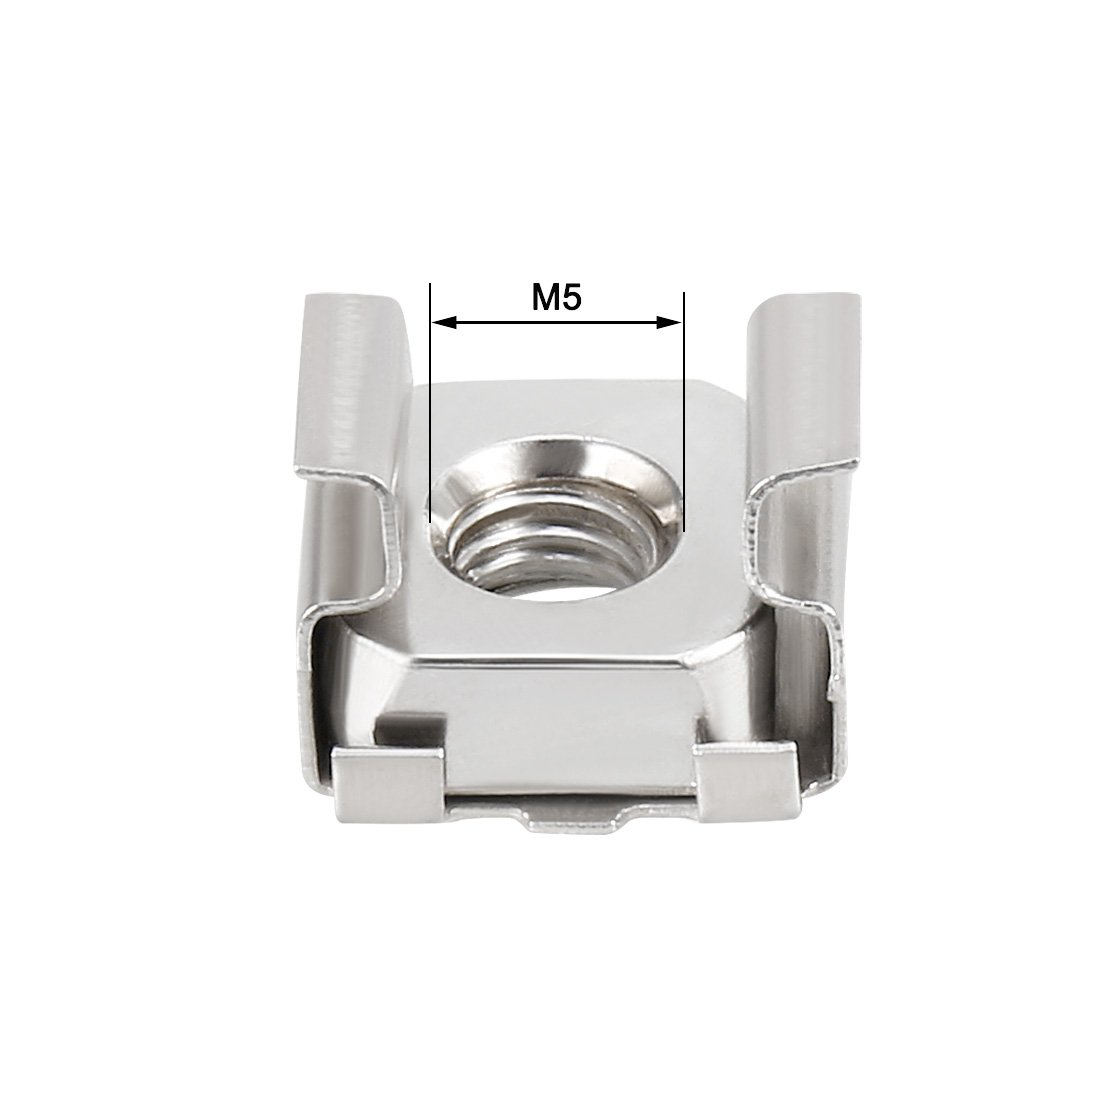 M5 Cage Nut Carbon Steel Zinc Plated Bronze Tone for Server Shelf Cabinet uxcell 55 Pack